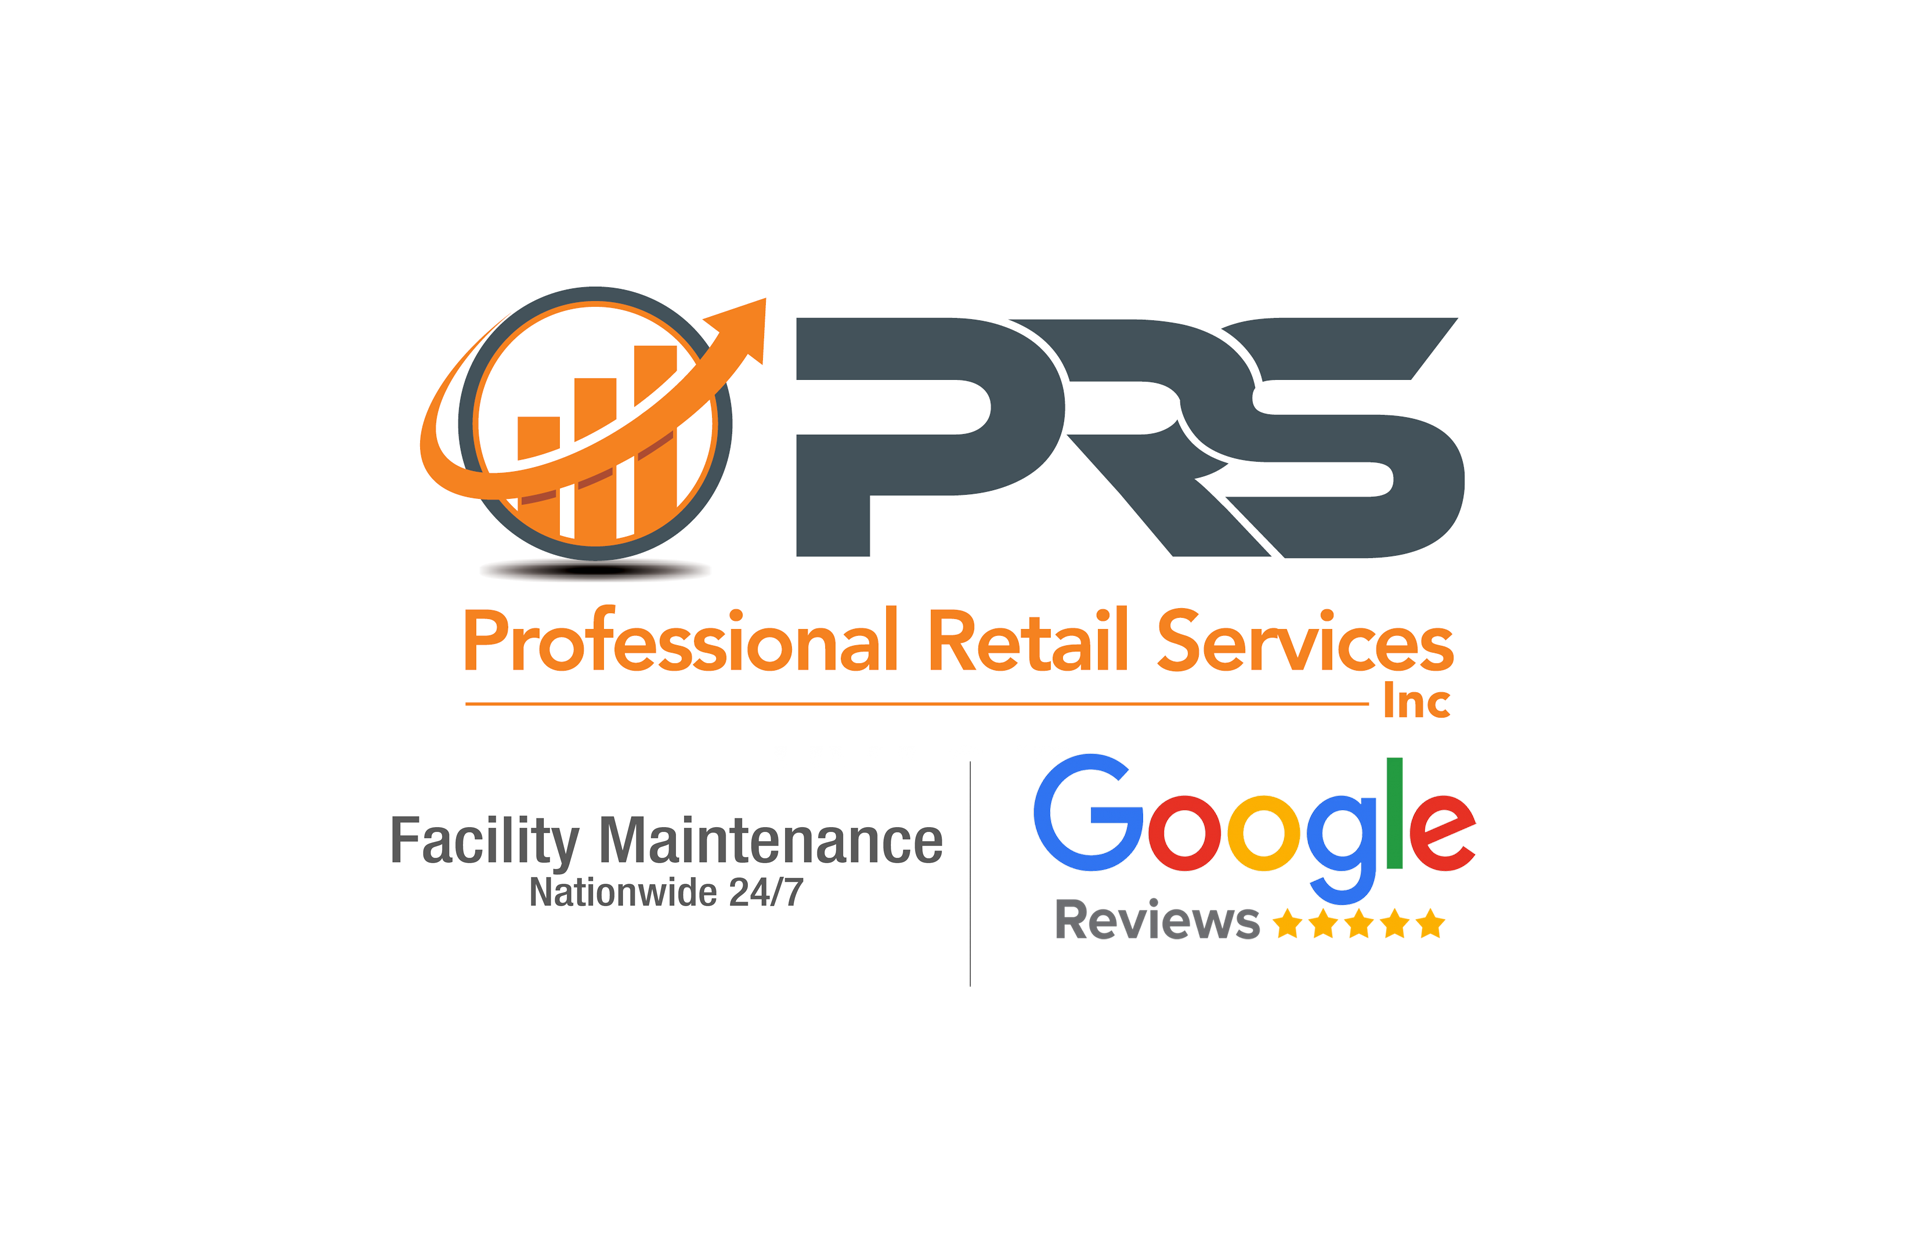 Facility Maintenance - 5 STAR GOOGLE REVIEW